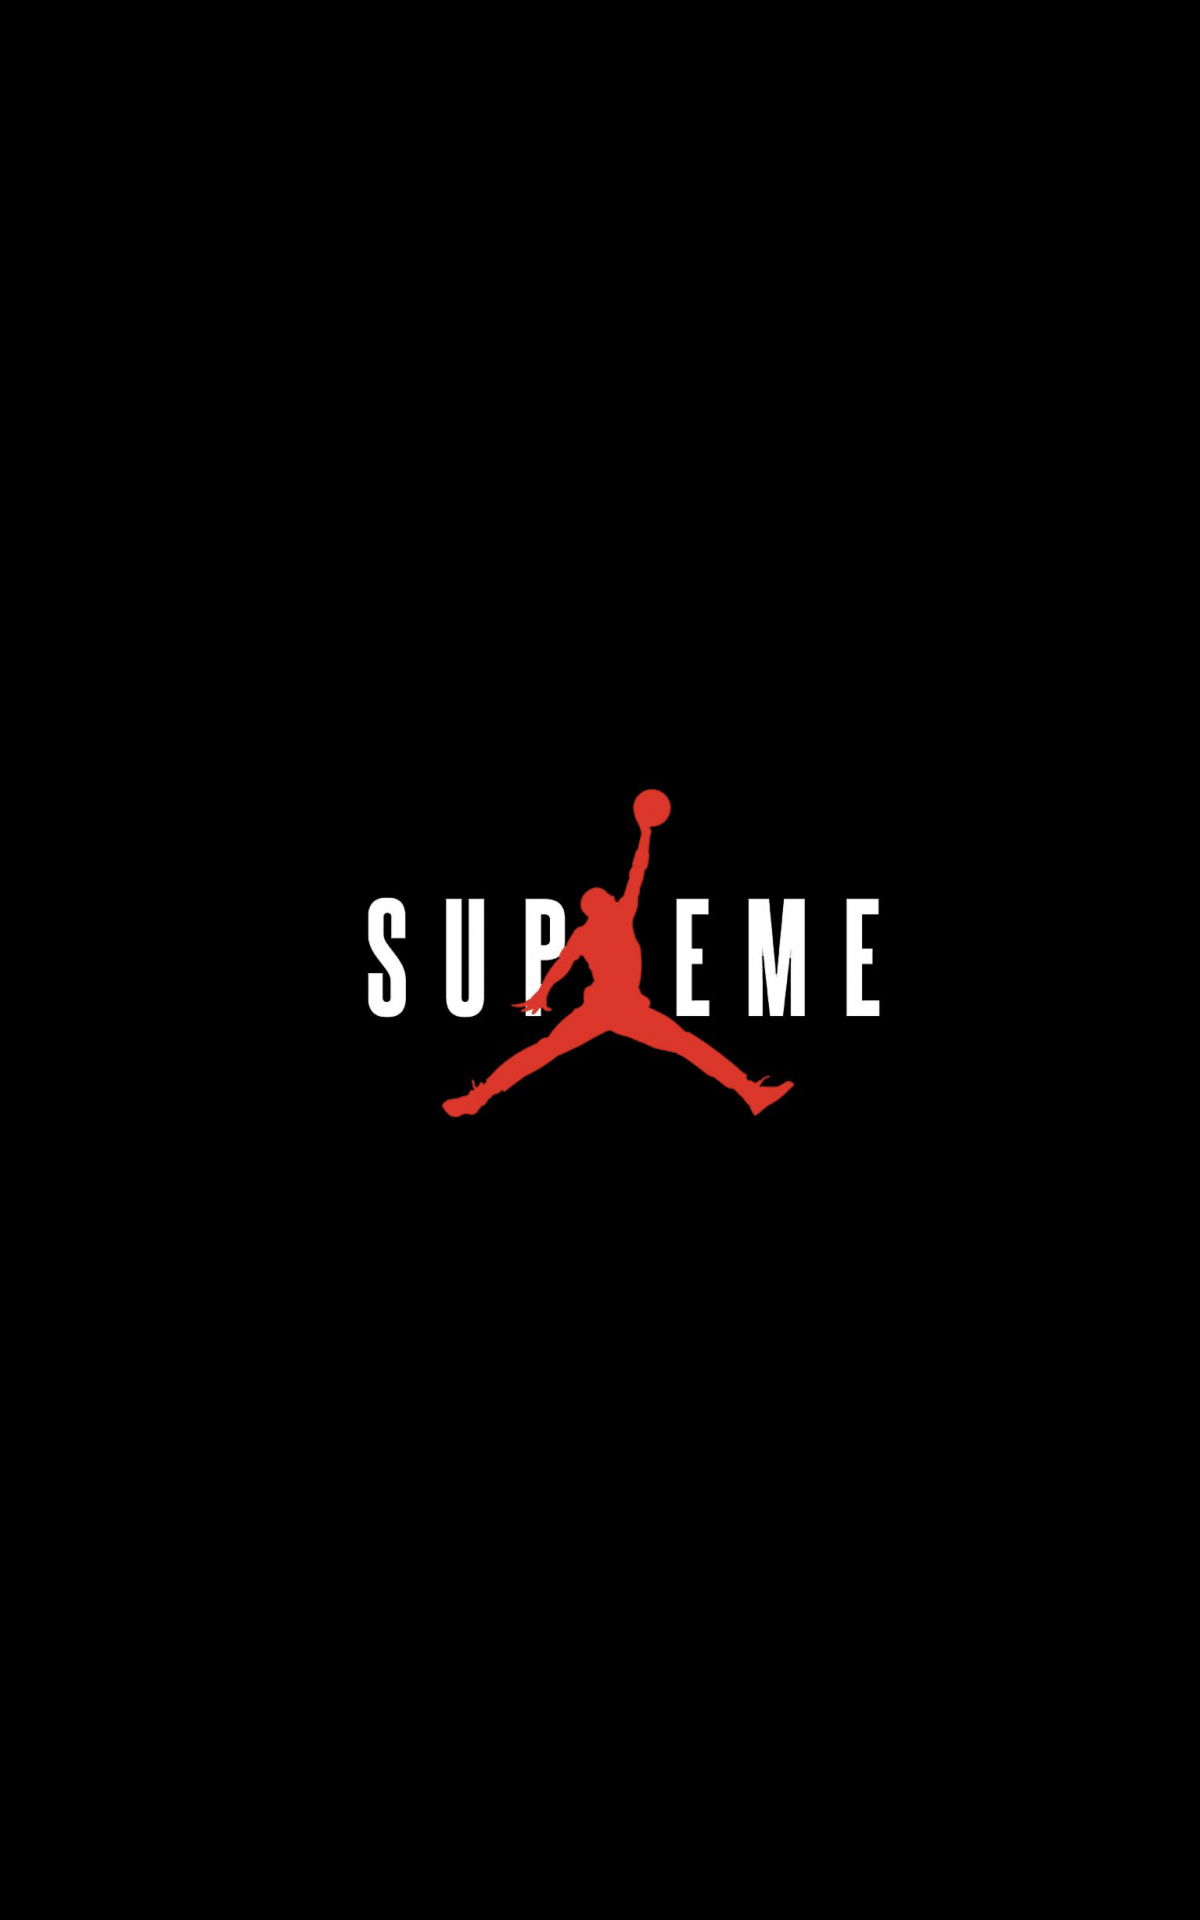 Download Supreme Space Wallpaper By Adiazedg3 52 Free On Zedge Now Browse Millions Of Popu Supreme Iphone Wallpaper Hypebeast Wallpaper Supreme Wallpaper